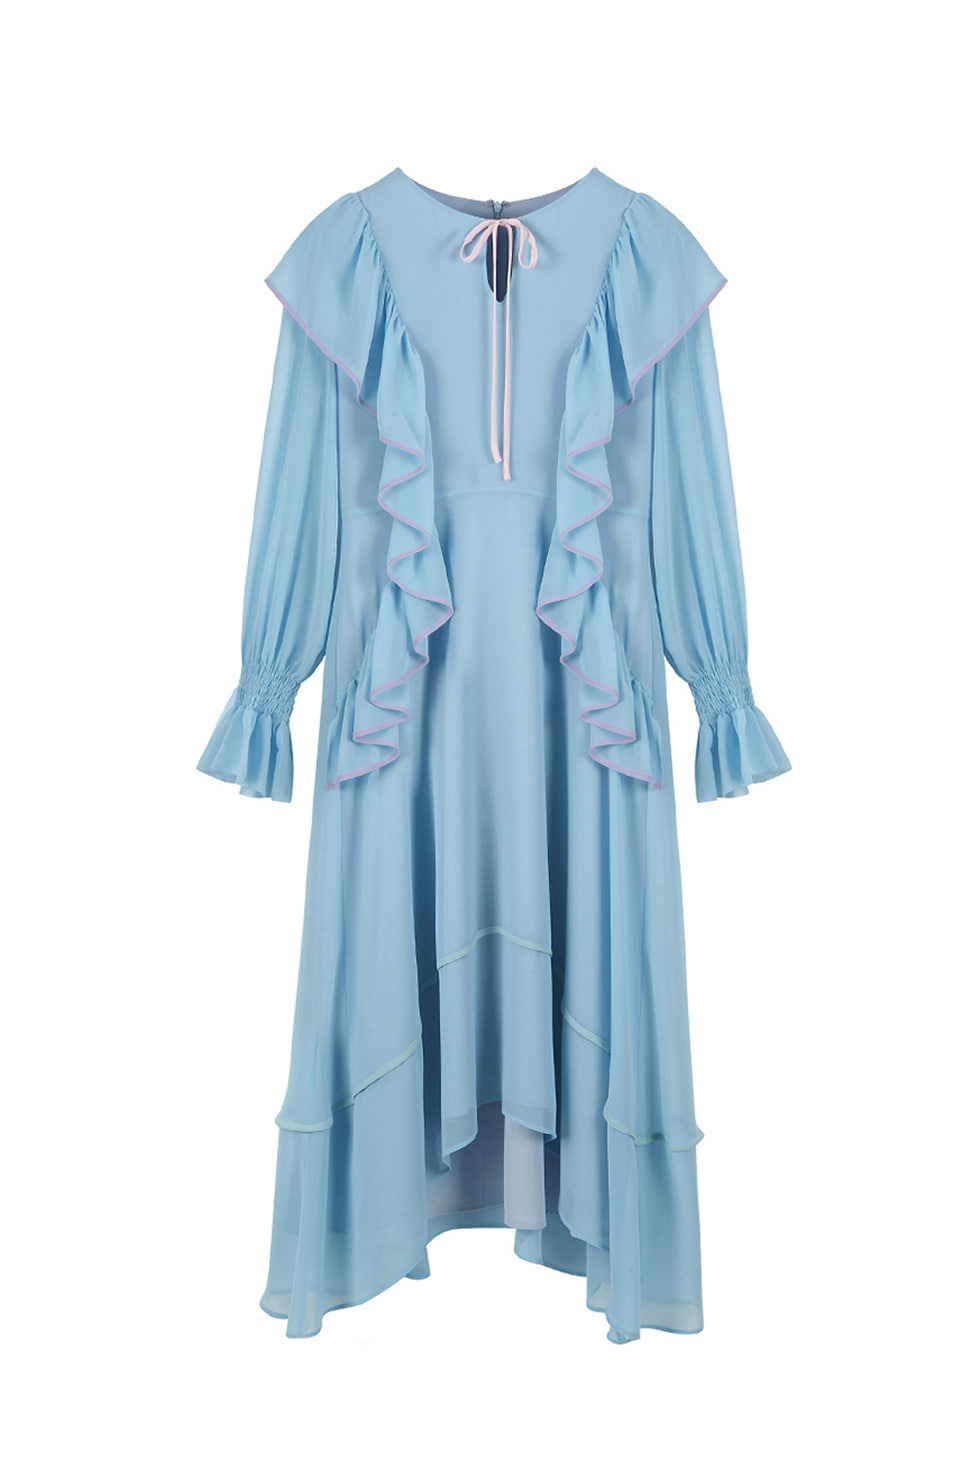 BINDING RUFFLE DRESS - BLUE